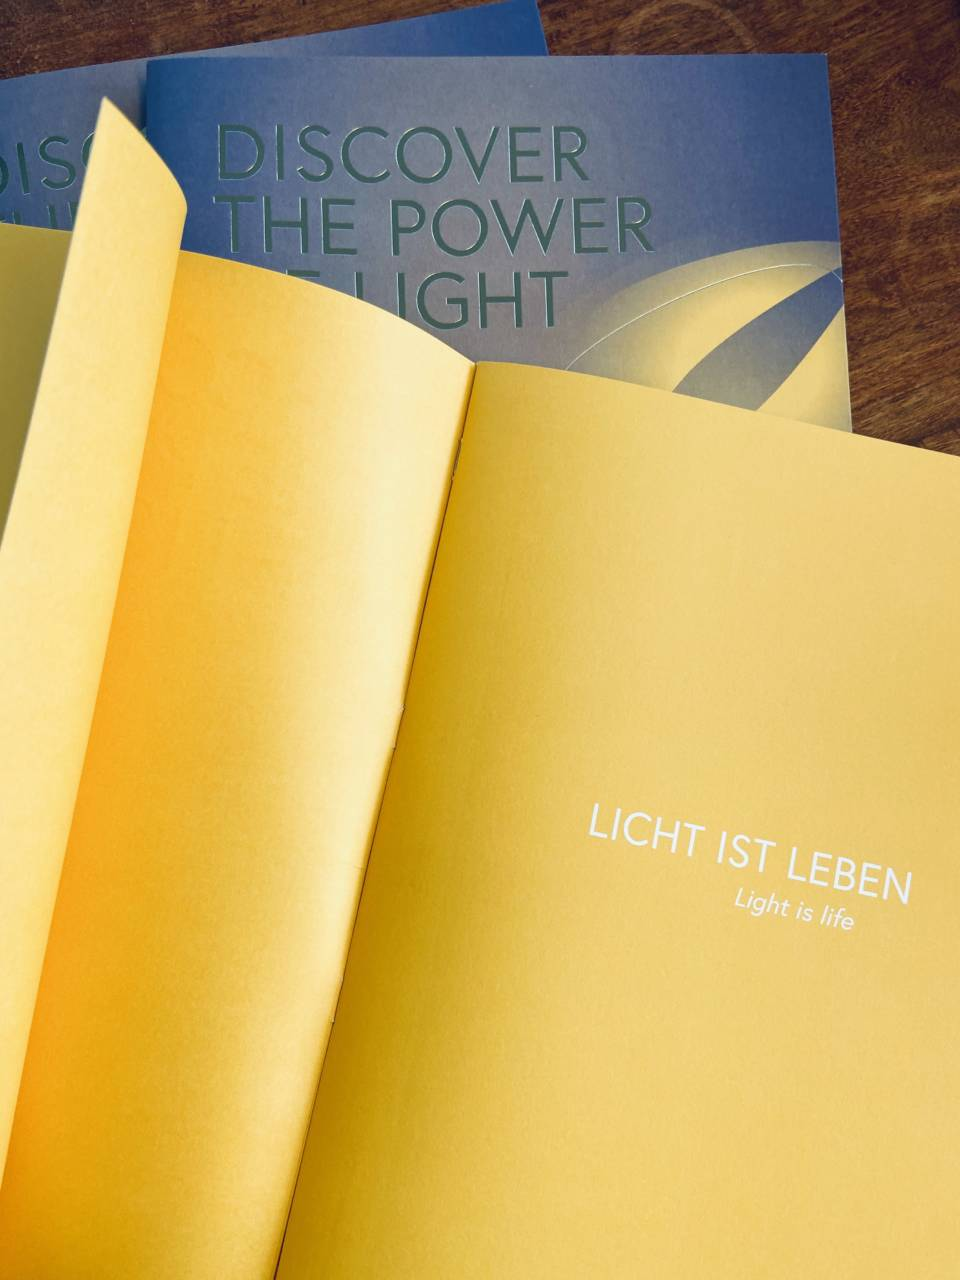 lichtbasis: Discover the power of light